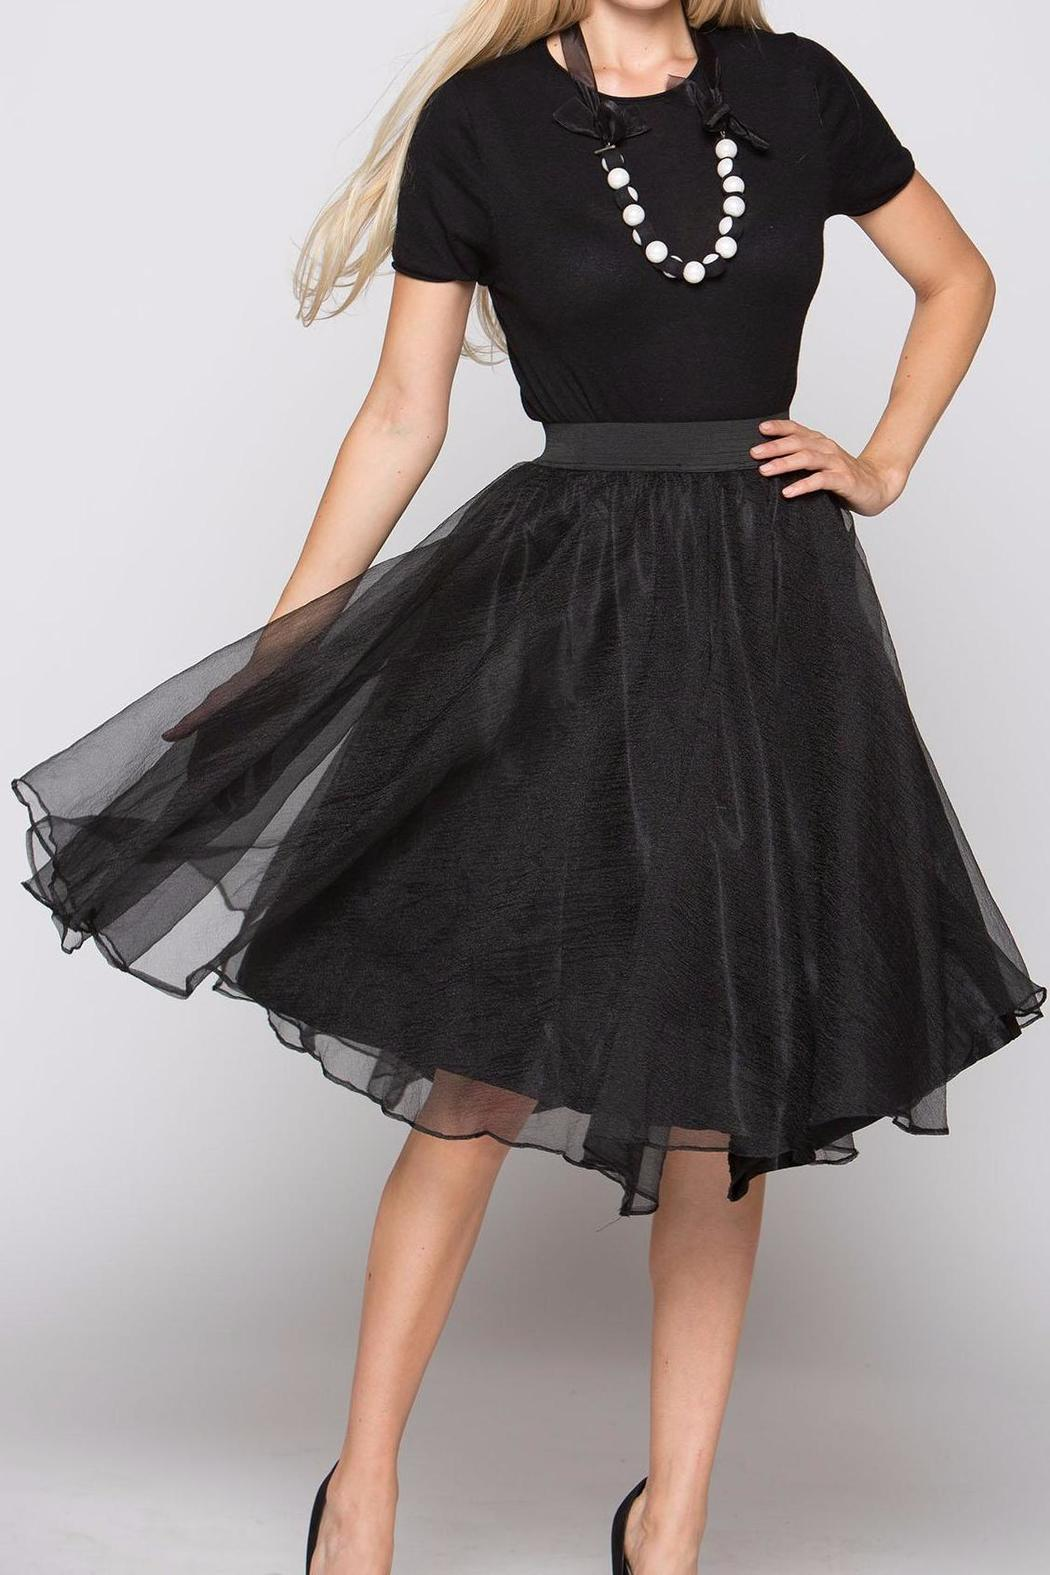 8b1416d73 WHY DRESS Women's Tutu Skirt from Philadelphia by my closet vault ...